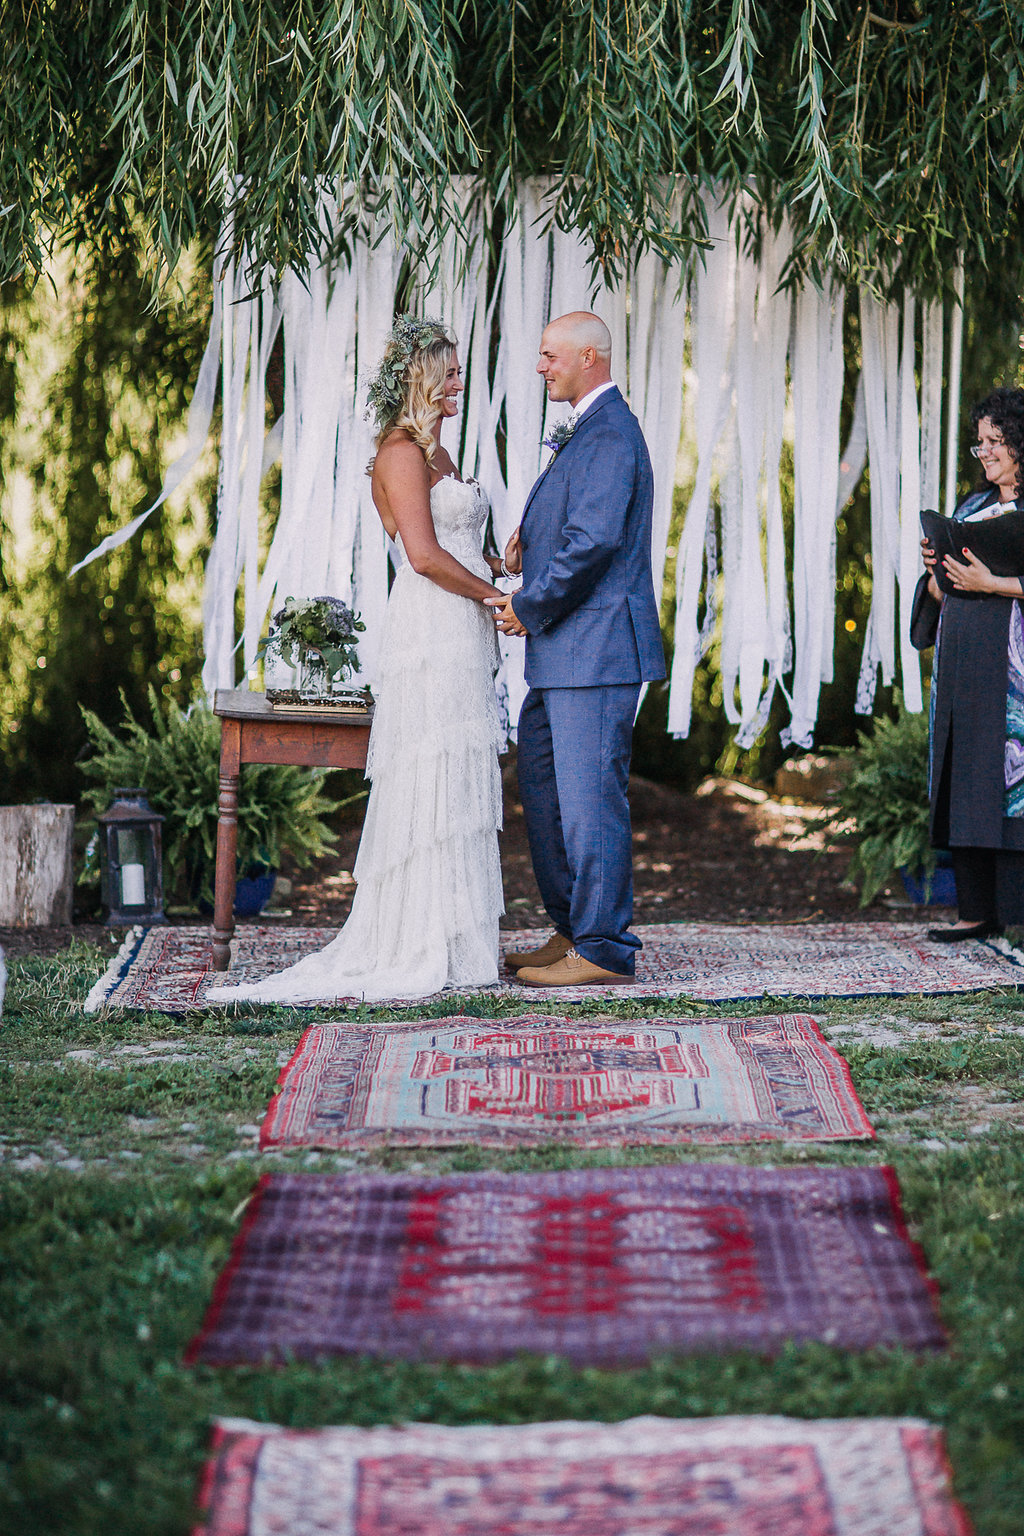 Monica_Relyea_Events_Dawn_Honsky_Photography_bride_and_groom_Nostrano_vineyard_ceremony_boho_bride_and_groom_Meg_and_TJ